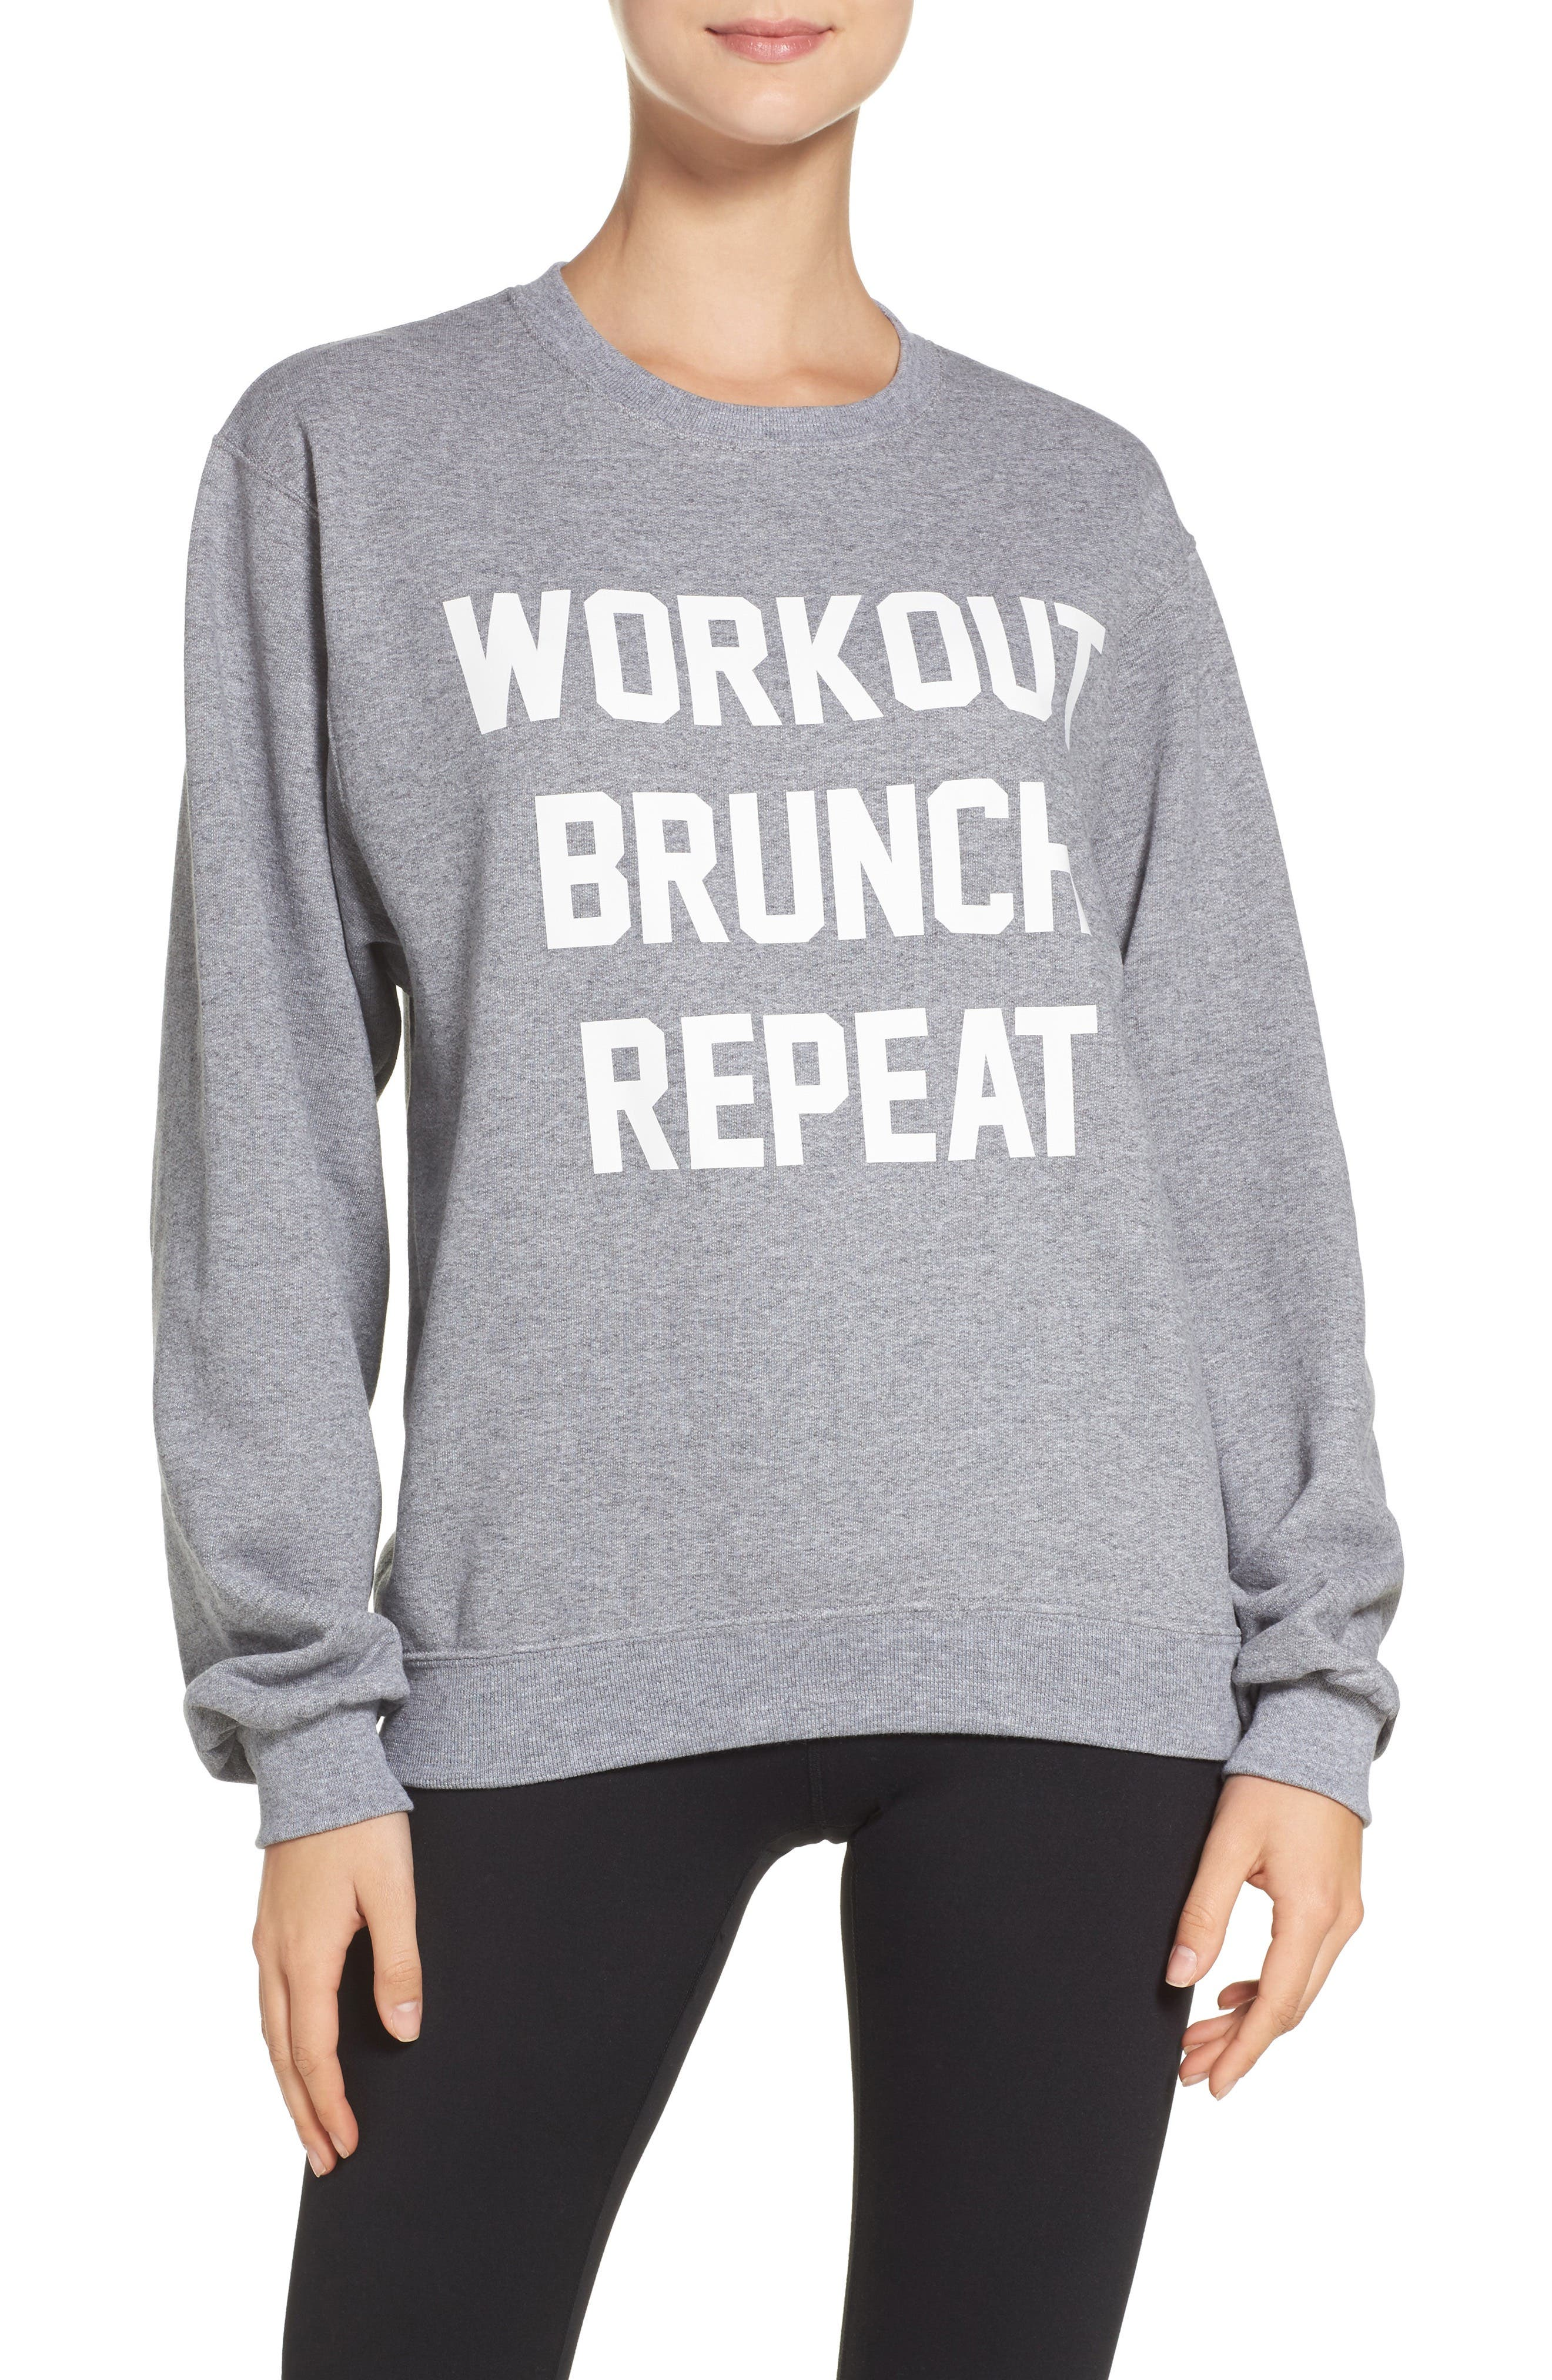 Alternate Image 1 Selected - Private Party Workout Brunch Repeat Sweatshirt